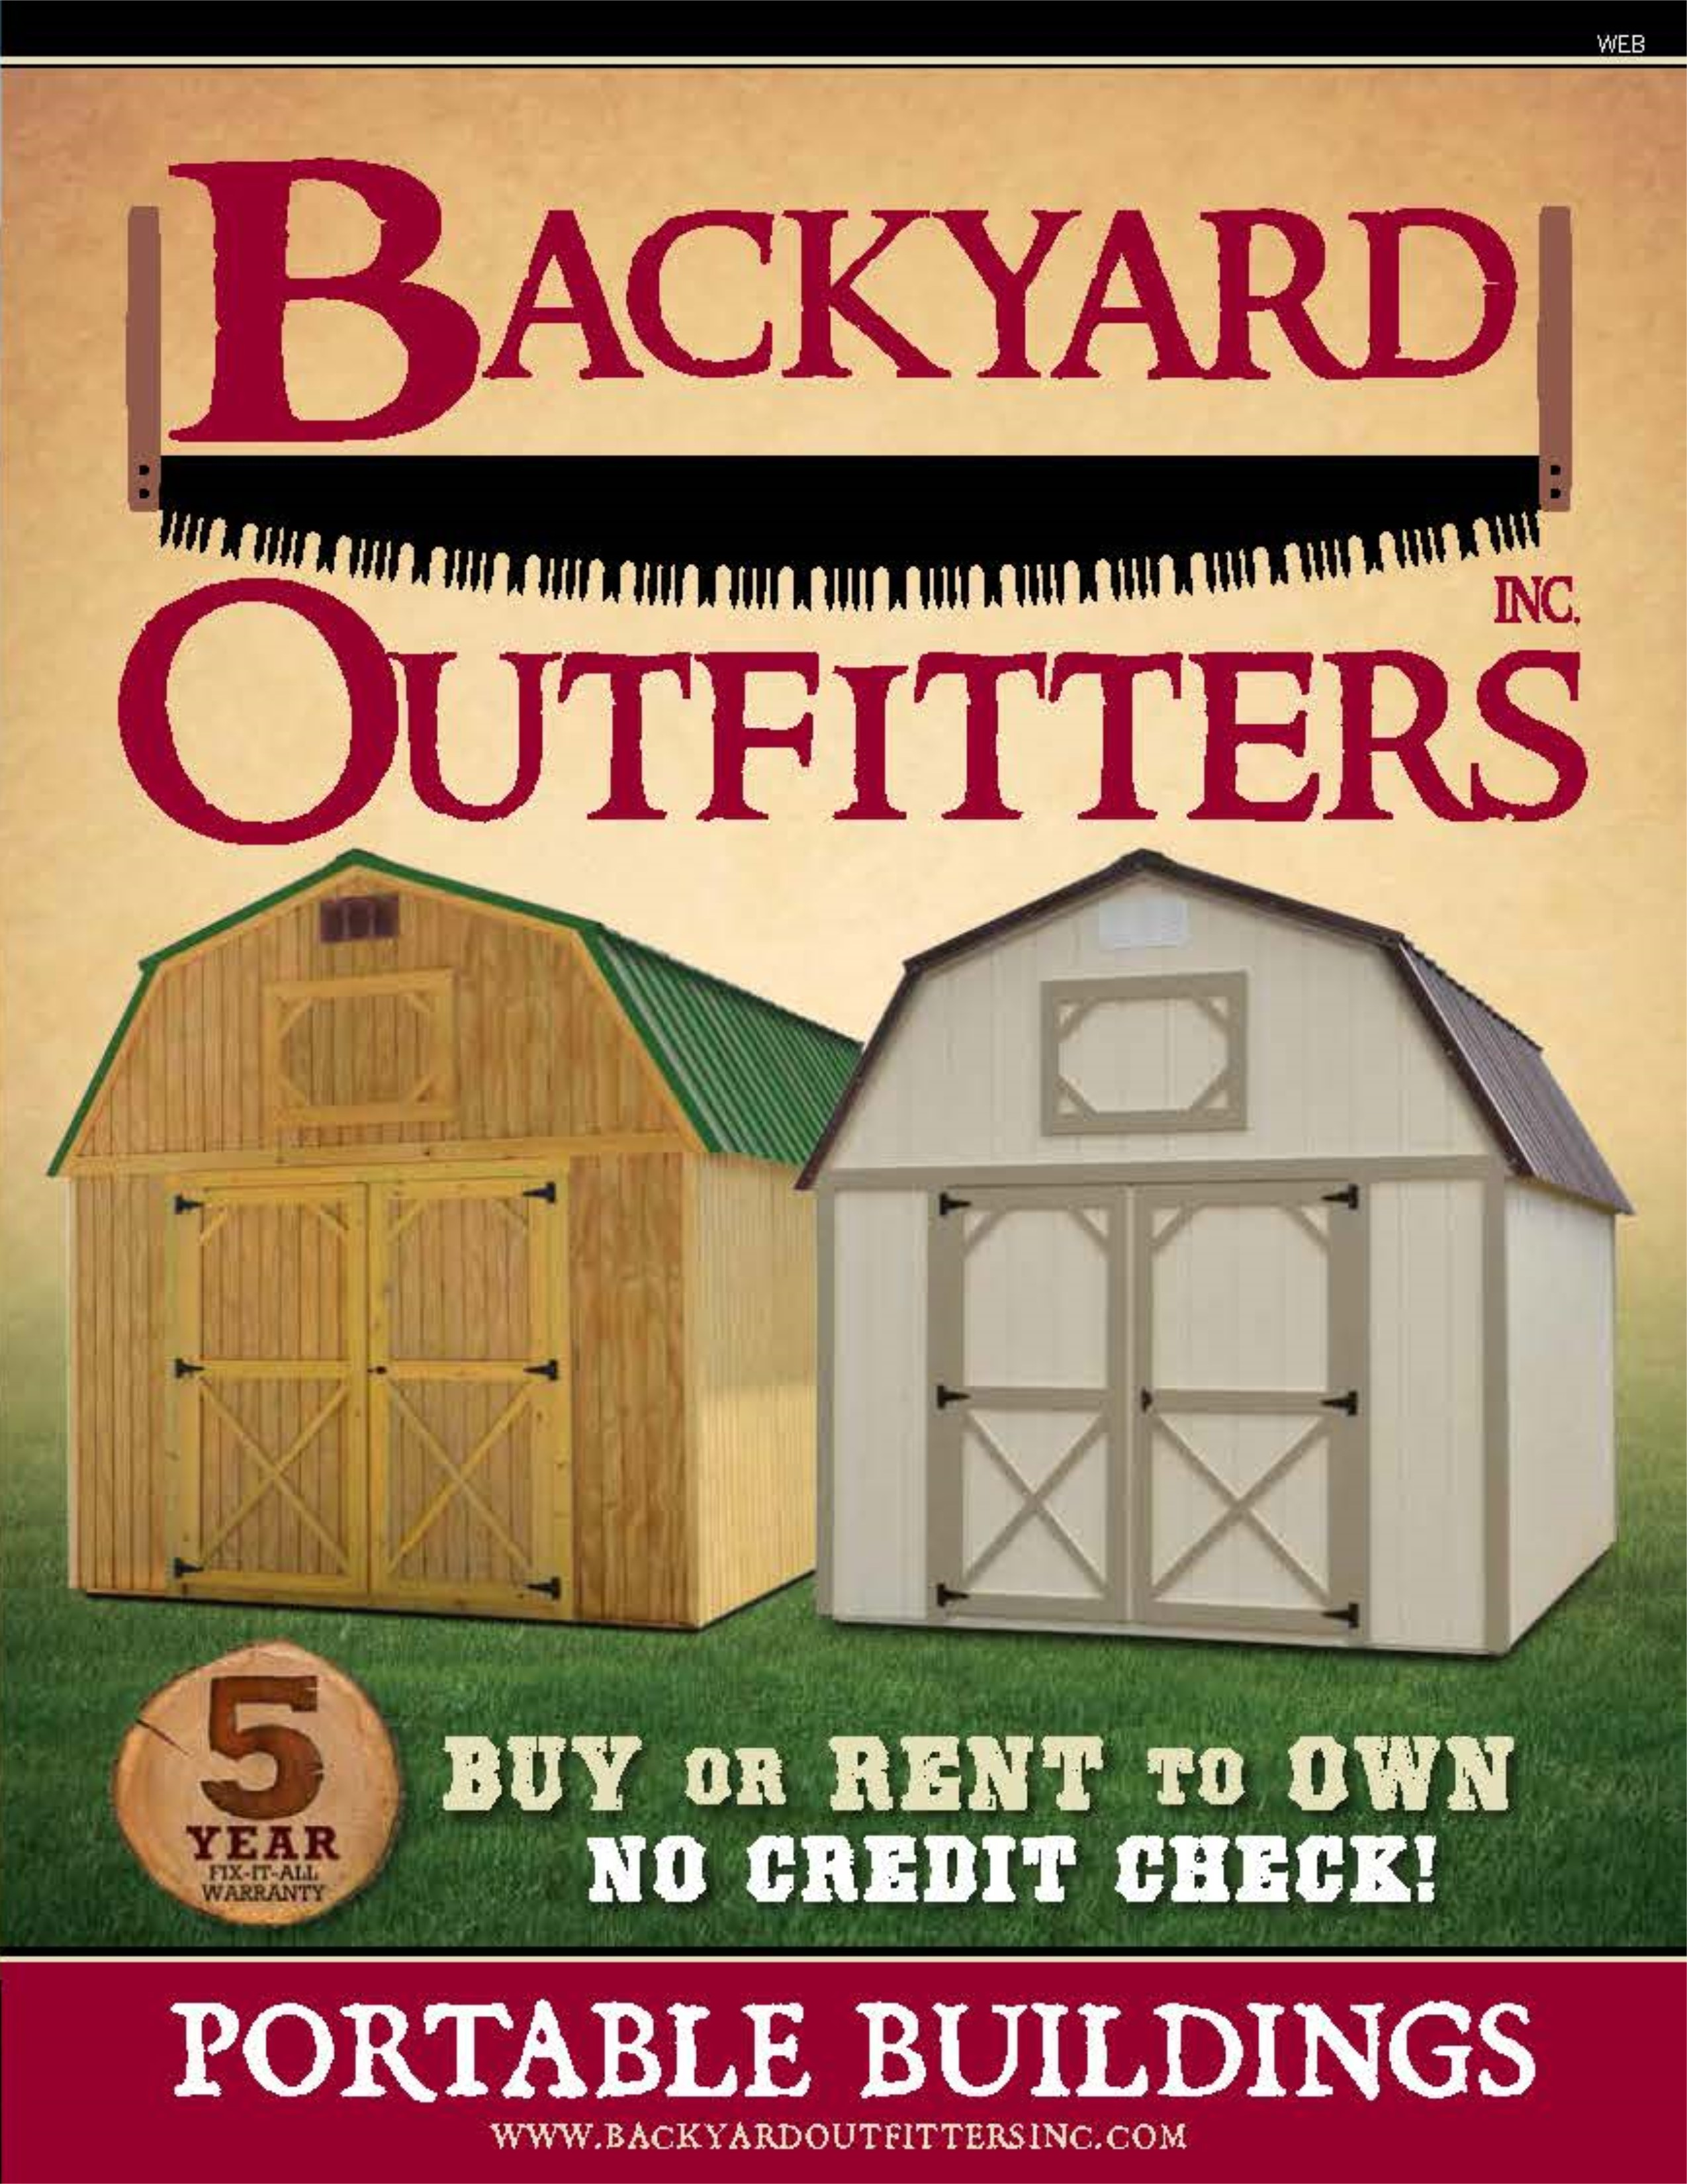 BACKYARD OUTFITTERS BROCHURE 2017